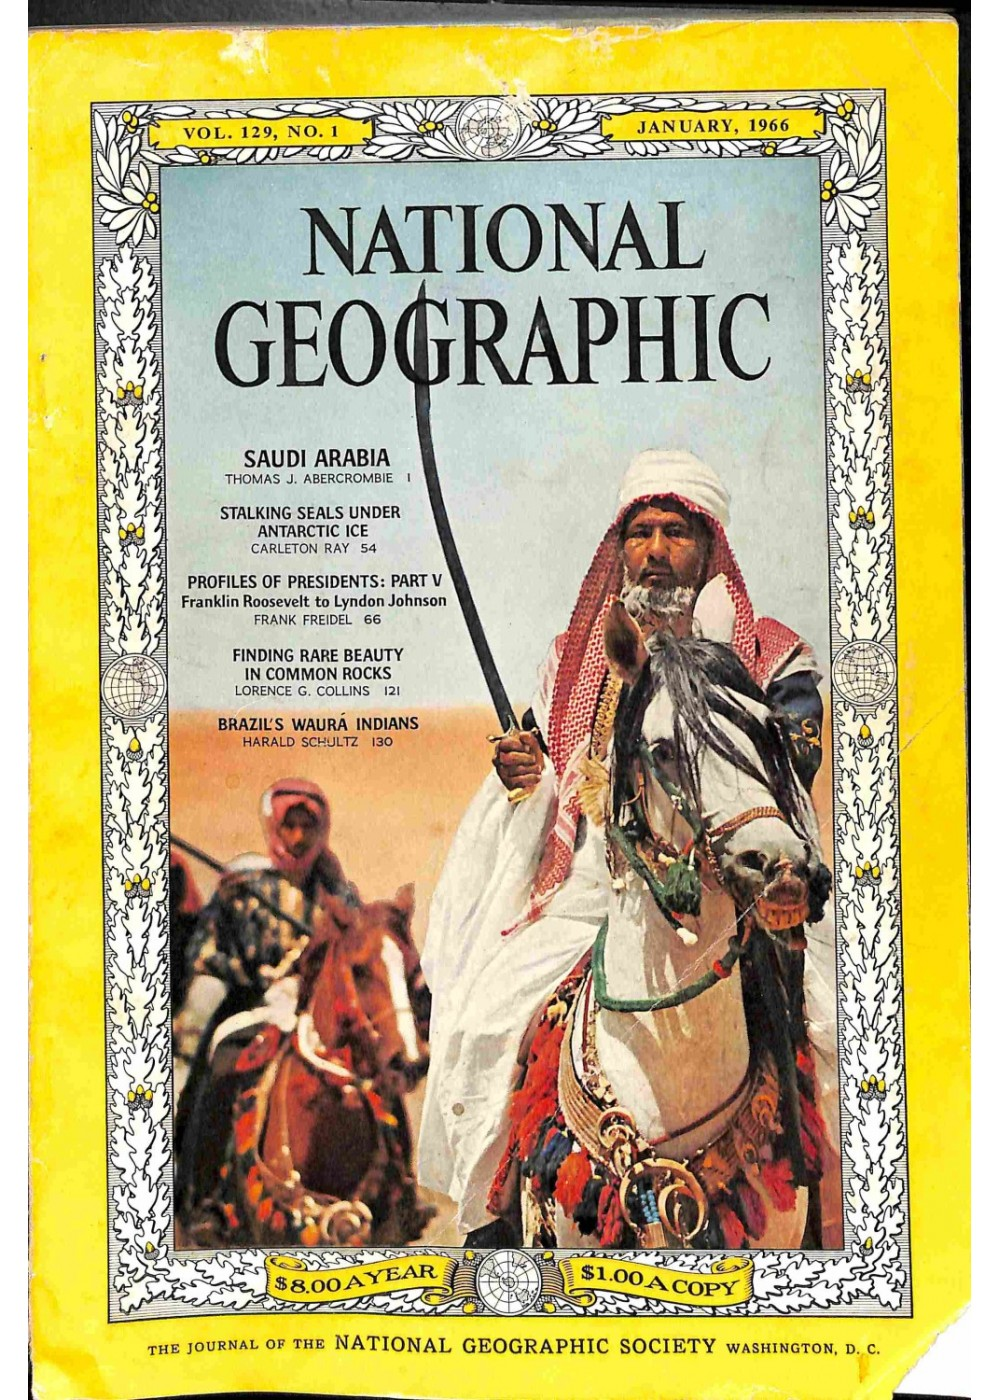 National Geographic, January 1966